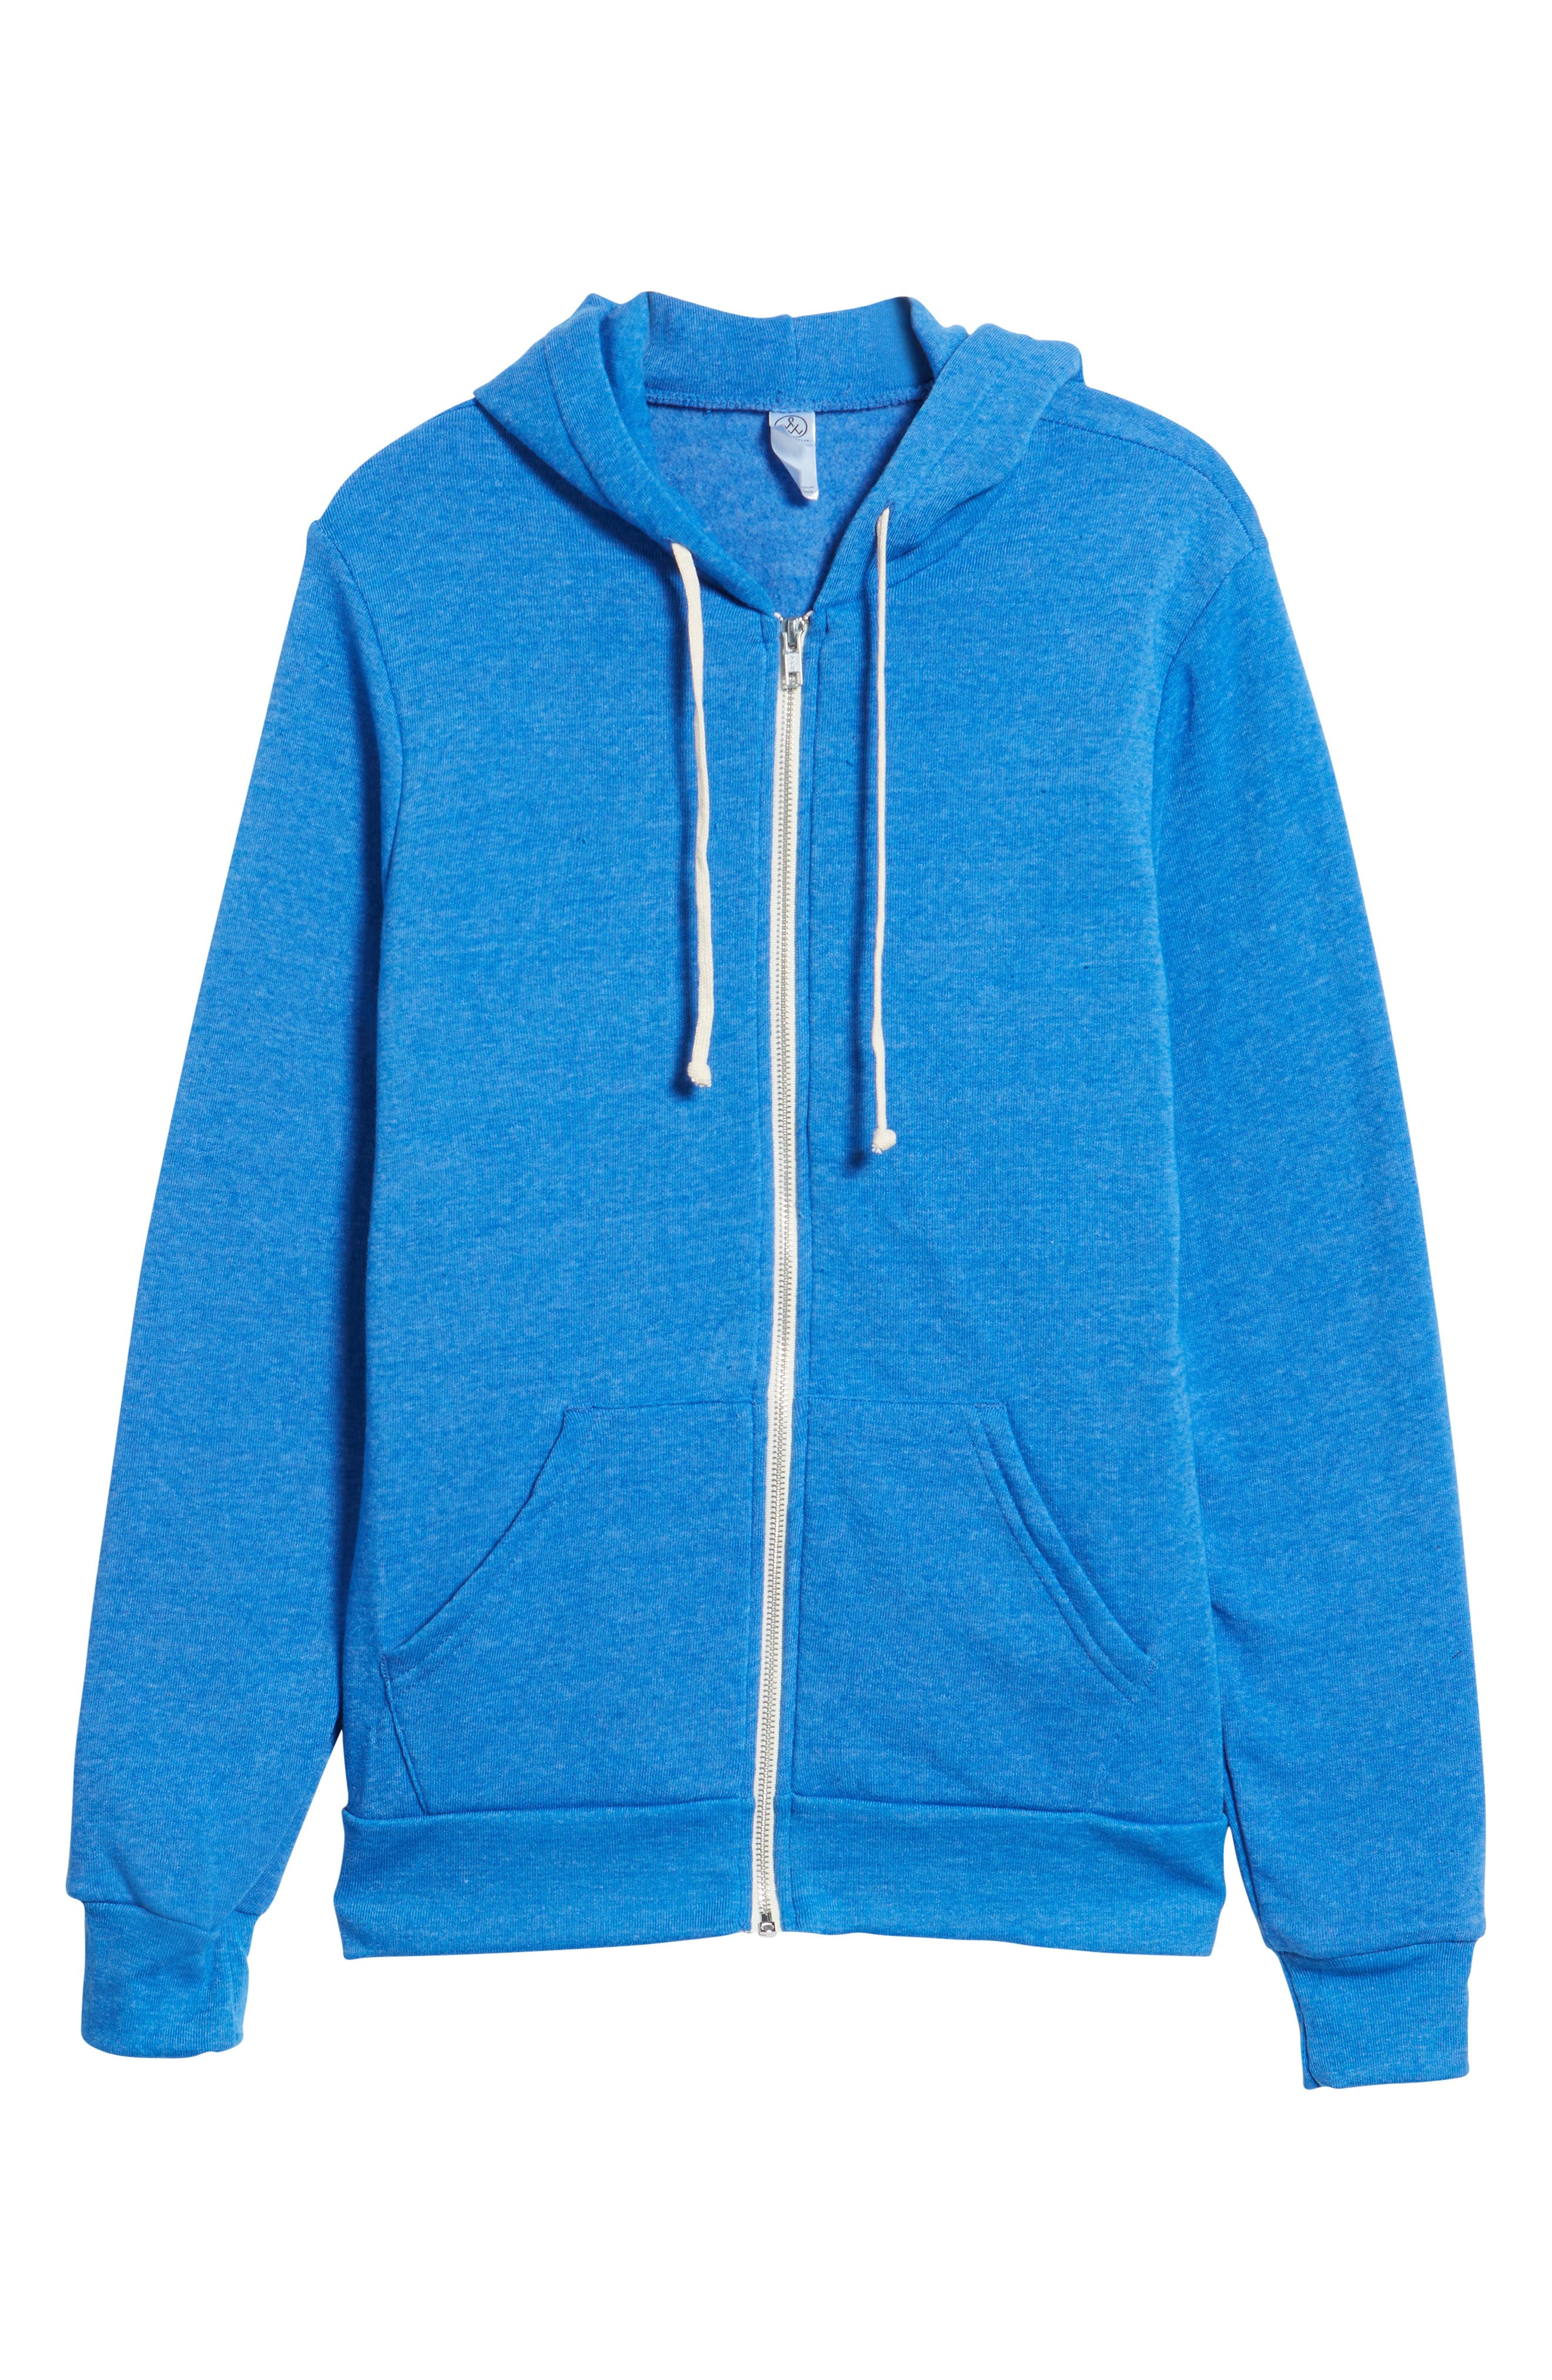 'Rocky' Trim Fit Hoodie,                             Alternate thumbnail 6, color,                             Eco True Pacific Blue